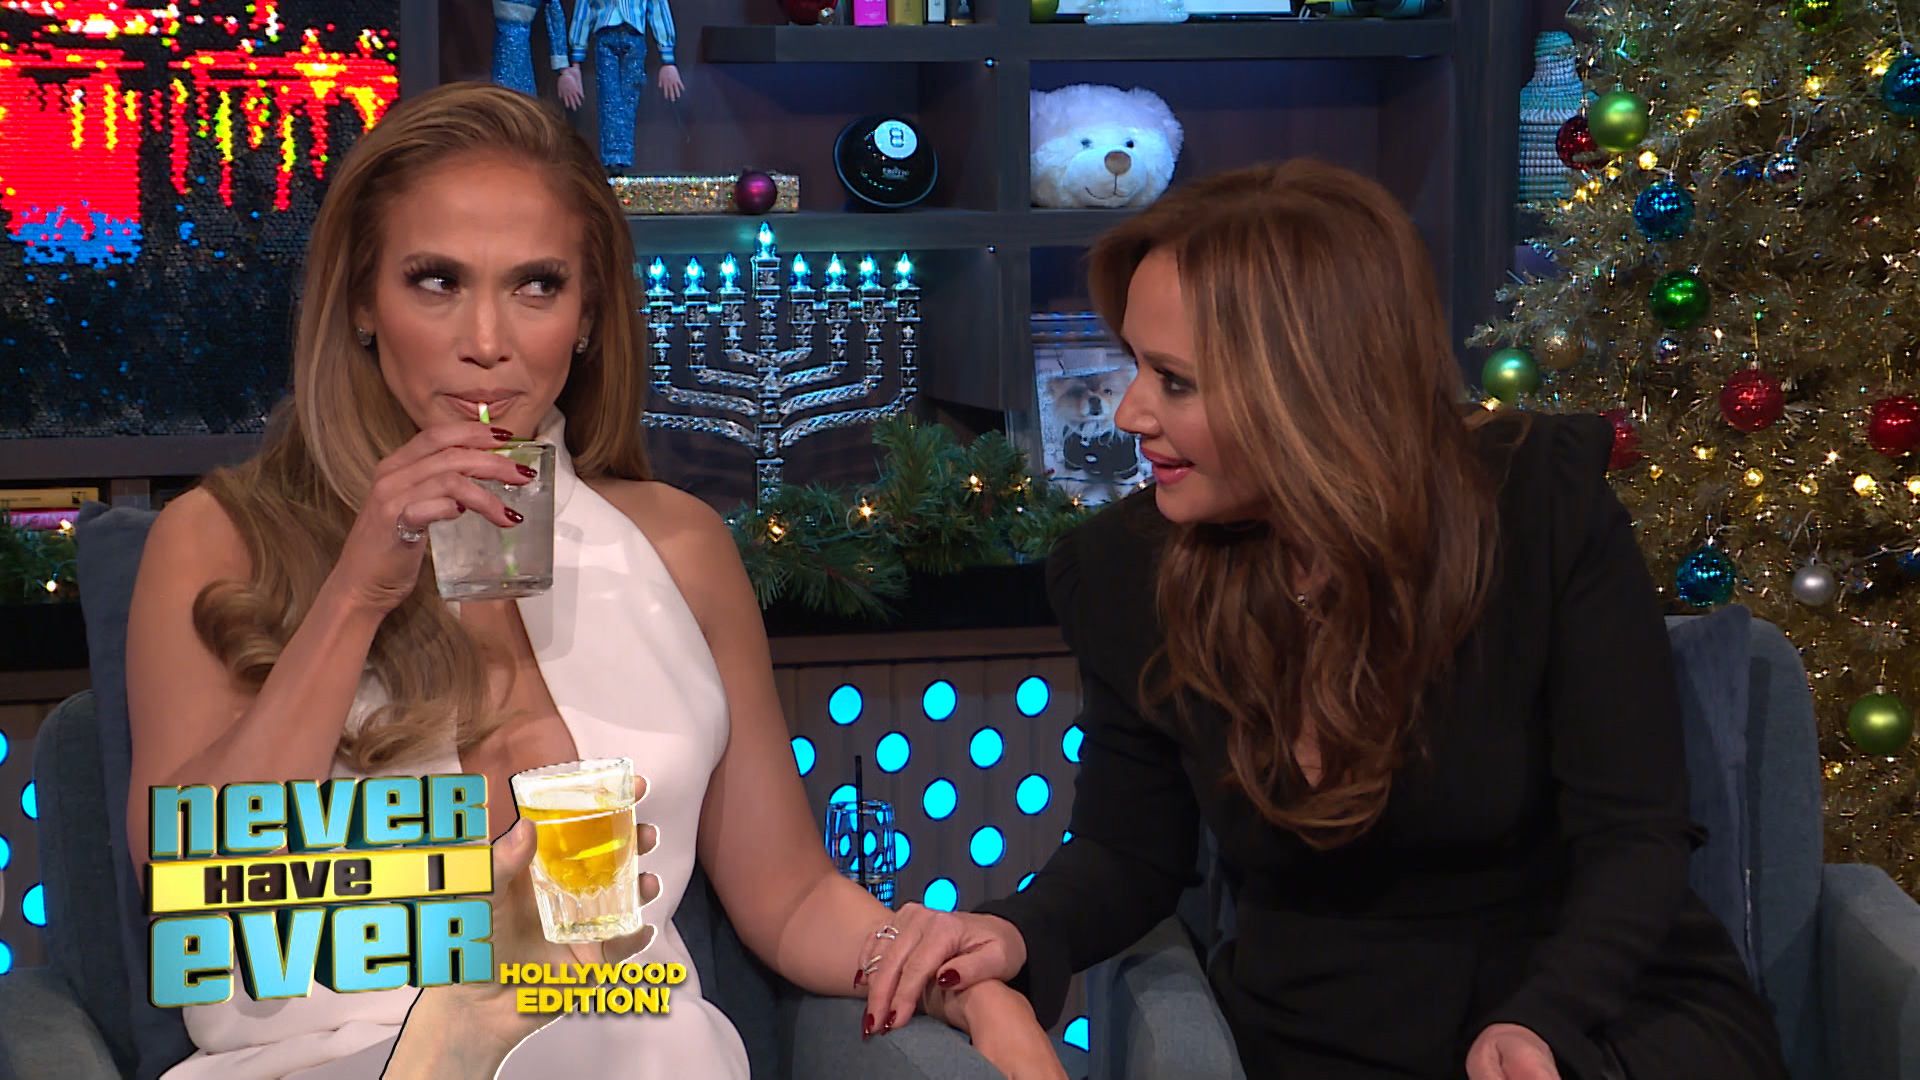 Never Have I Ever with Jennifer Lopez & Leah Remini